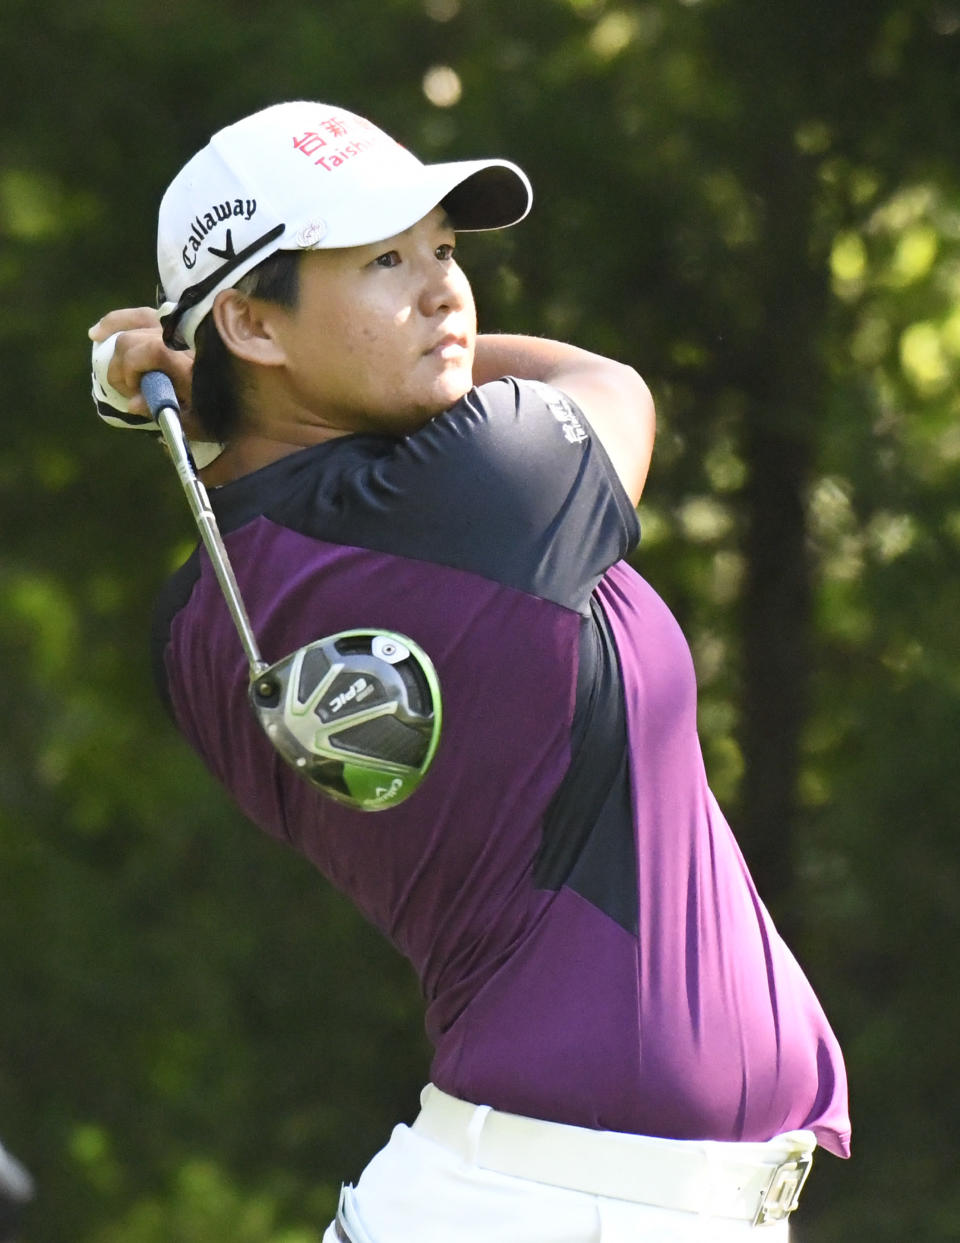 FILE - In this Friday, June 29, 2018 file photo, Yani Tseng, of Taiwan, watches her tee shot on the 12th hole during the second round of the KPMG Women's PGA Championship golf tournament at Kemper Lakes Golf Club in Kildeer, Ill. Tseng, who has gone from No. 1 to No. 919 in the world, returns to the LPGA Tour this week for the first time in nearly two years. (AP Photo/David Banks, File)